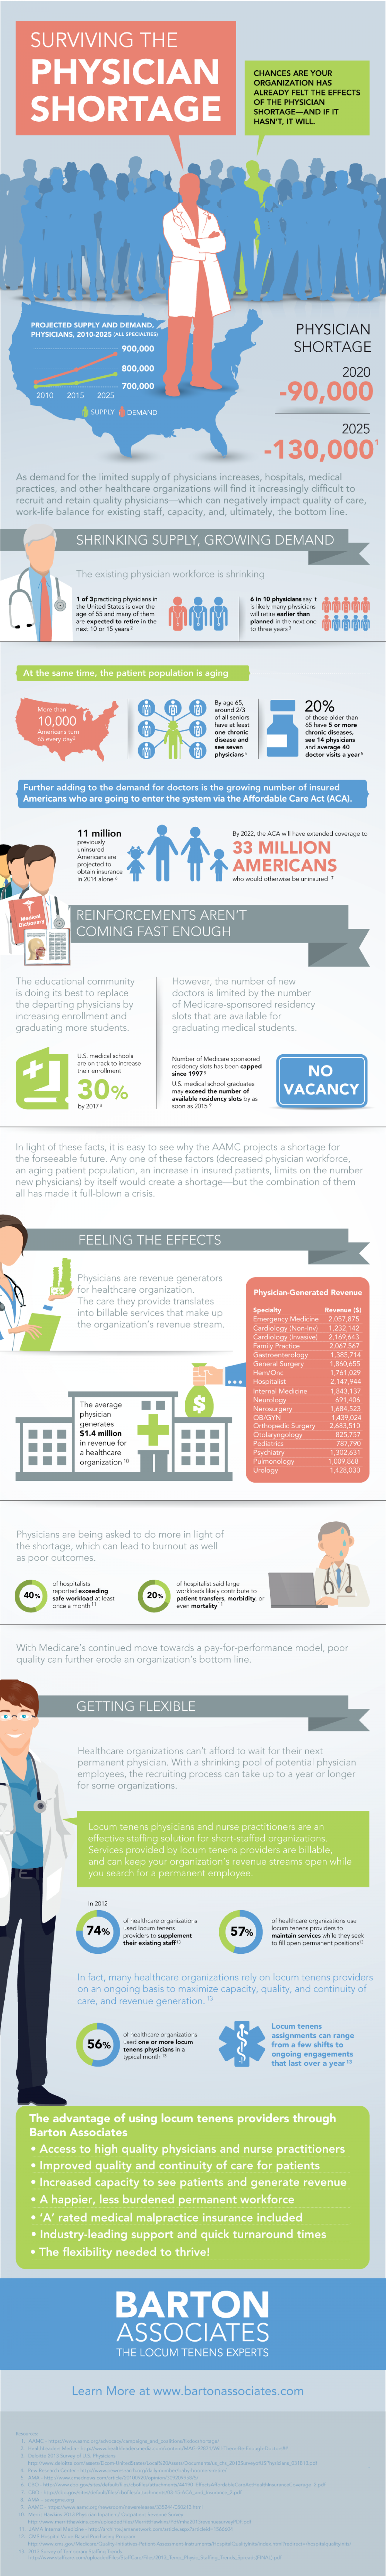 Surviving the Physician Shortage Infographic